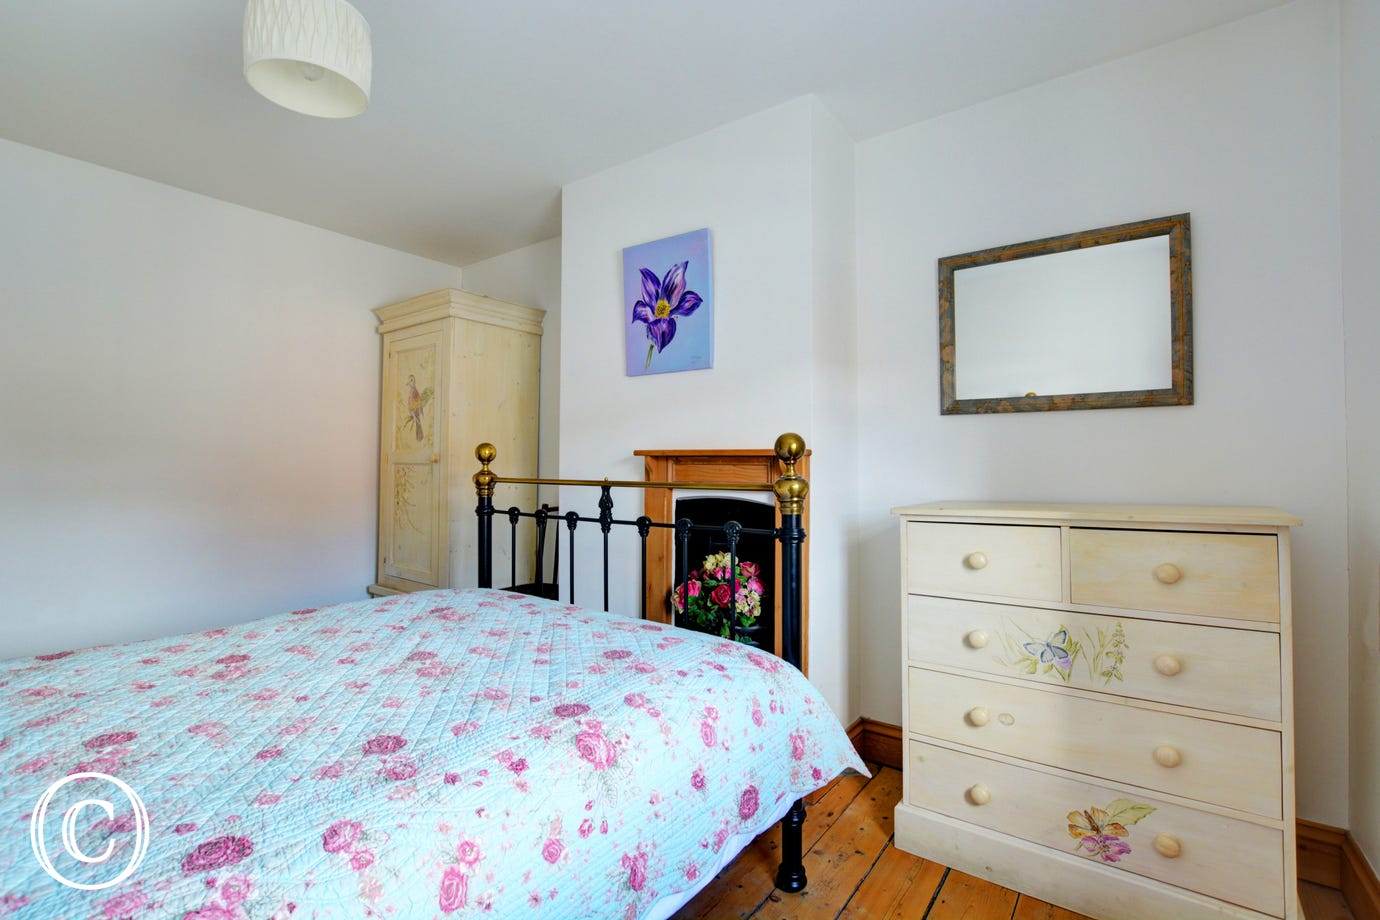 Charming double bedroom with delightful hand painted bedroom furniture